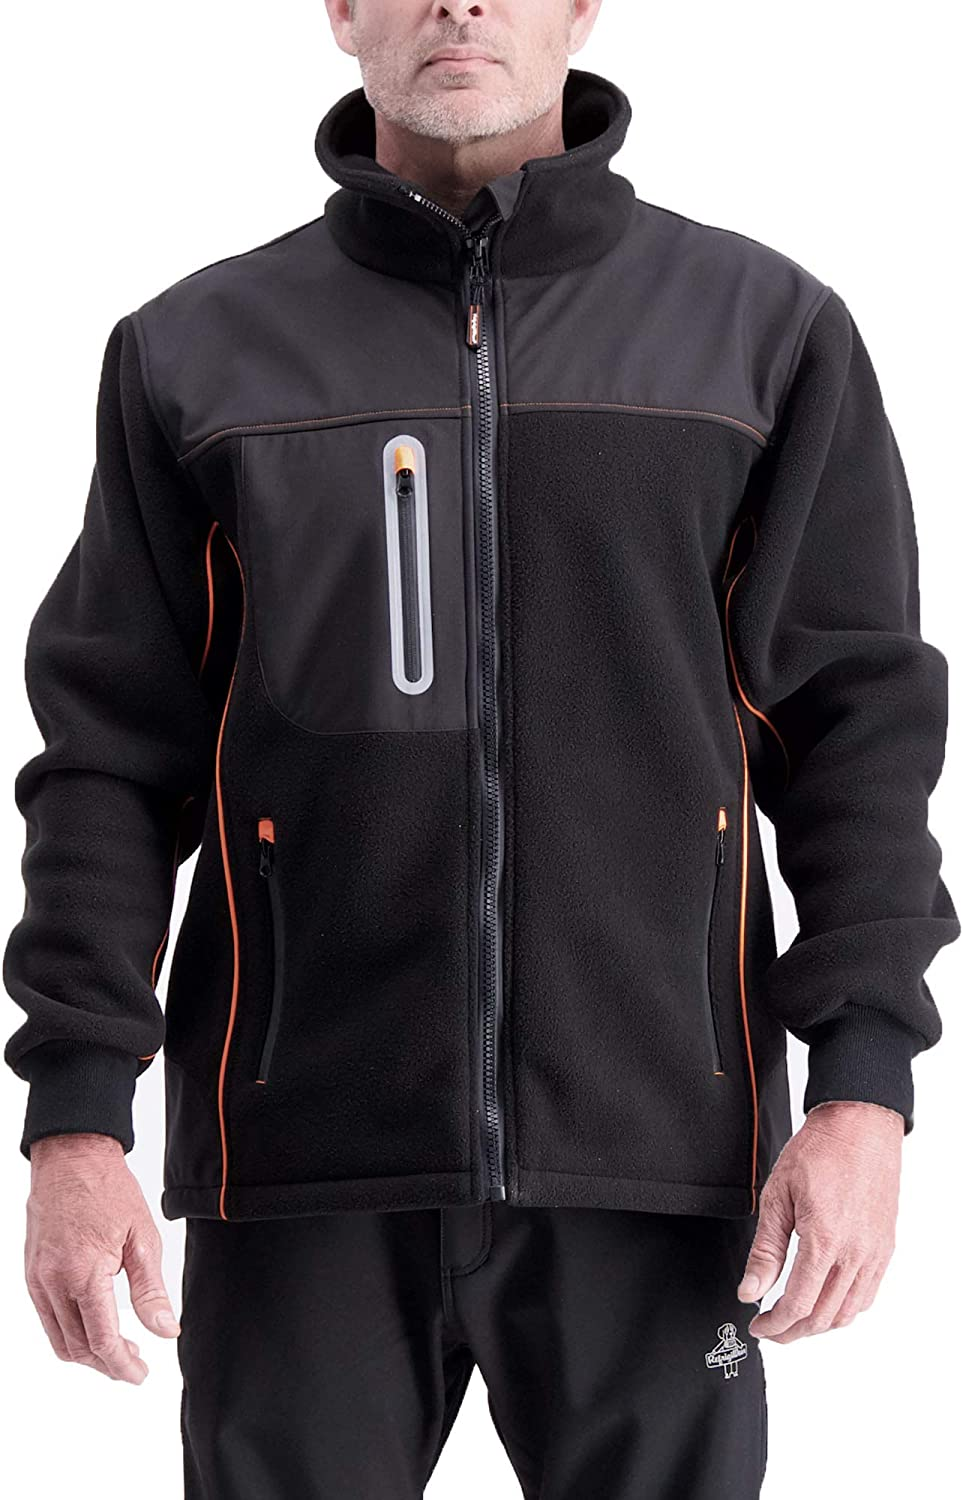 RefrigiWear Water-Resistant PolarForce Hybrid Fleece Insulated Jacket with HiVis Orange Piping